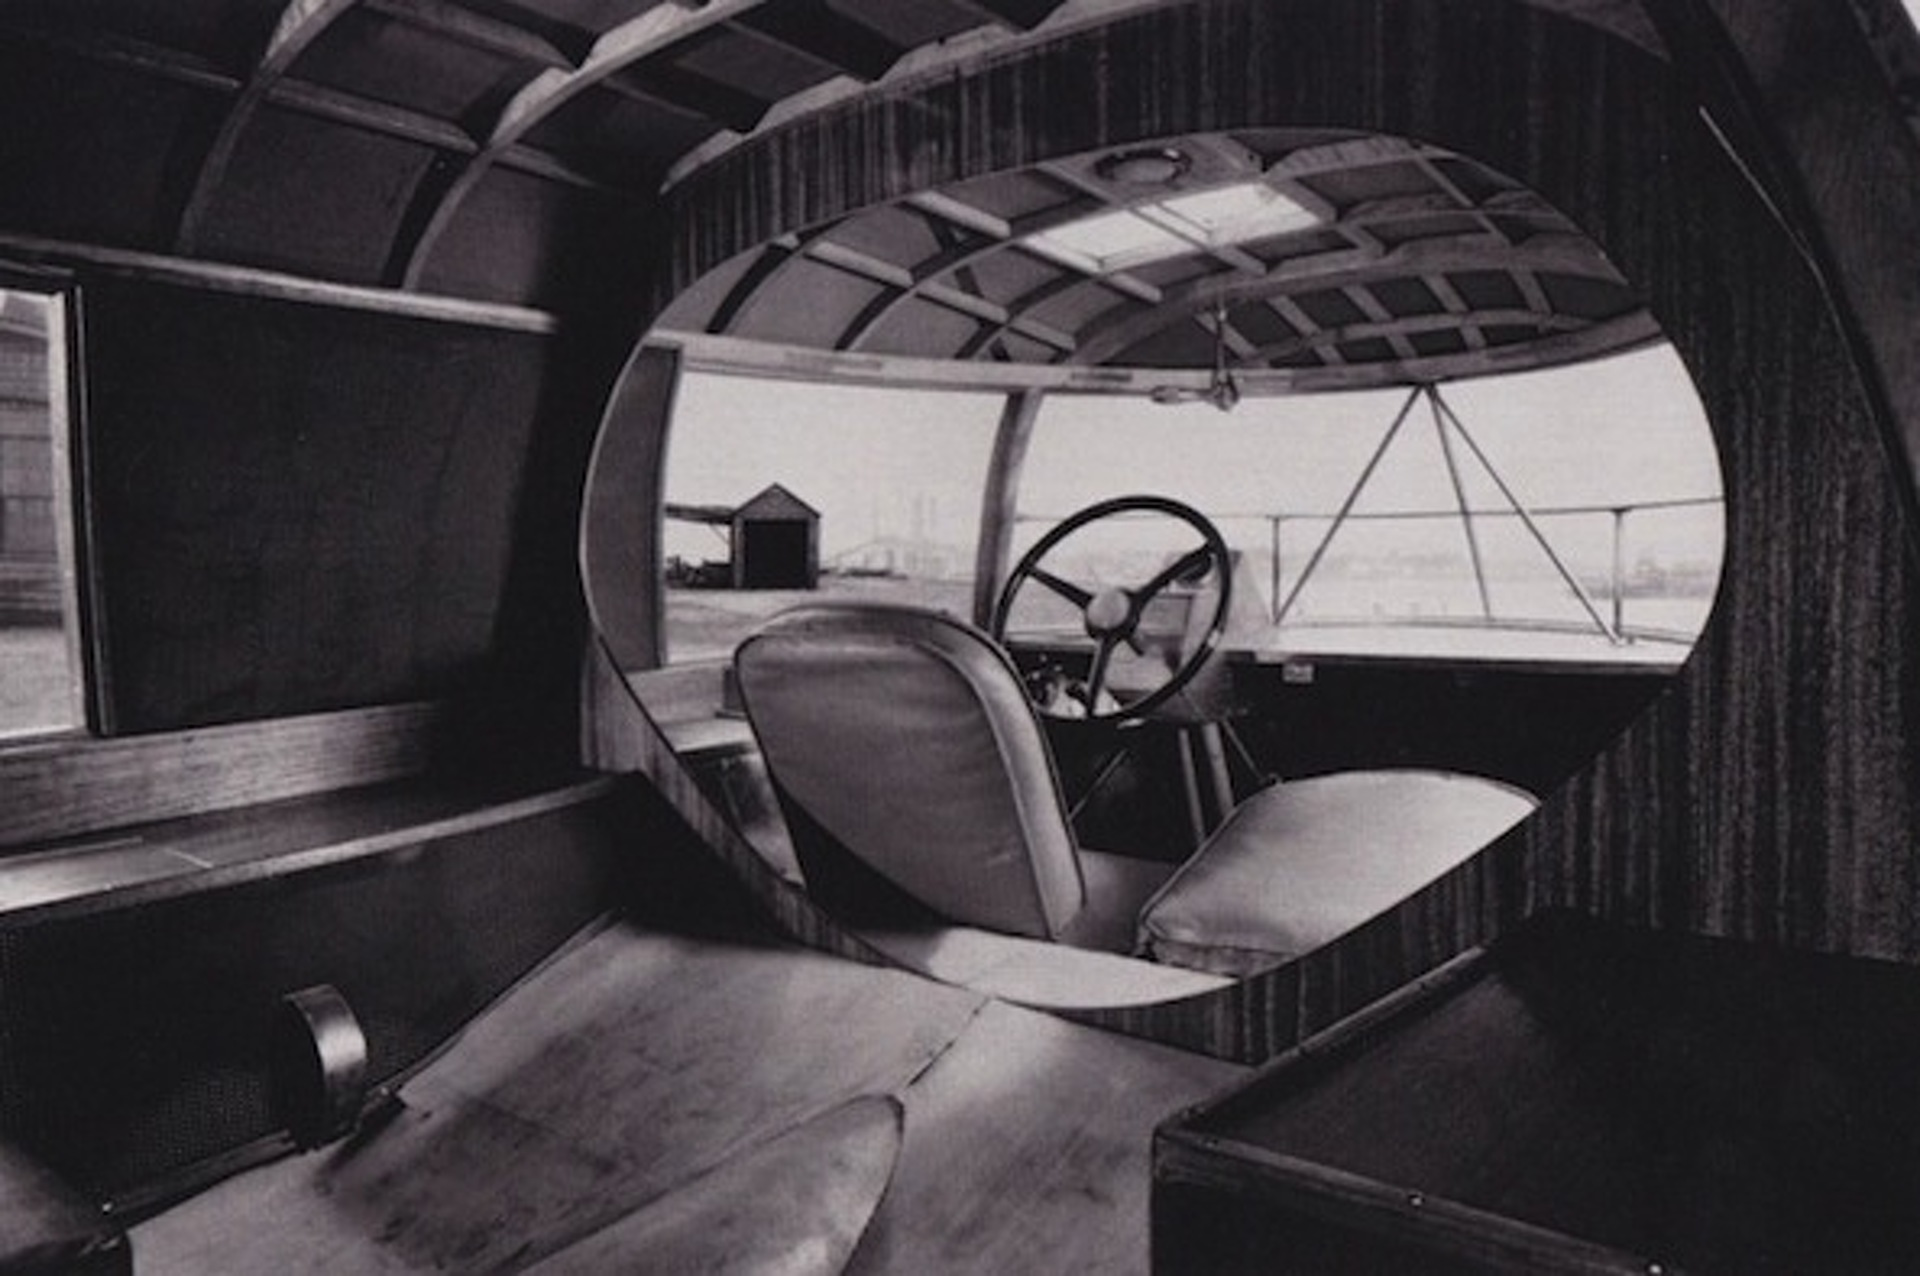 Buckminster Fuller's Dymaxion: A Car as Unconventional as its Creator